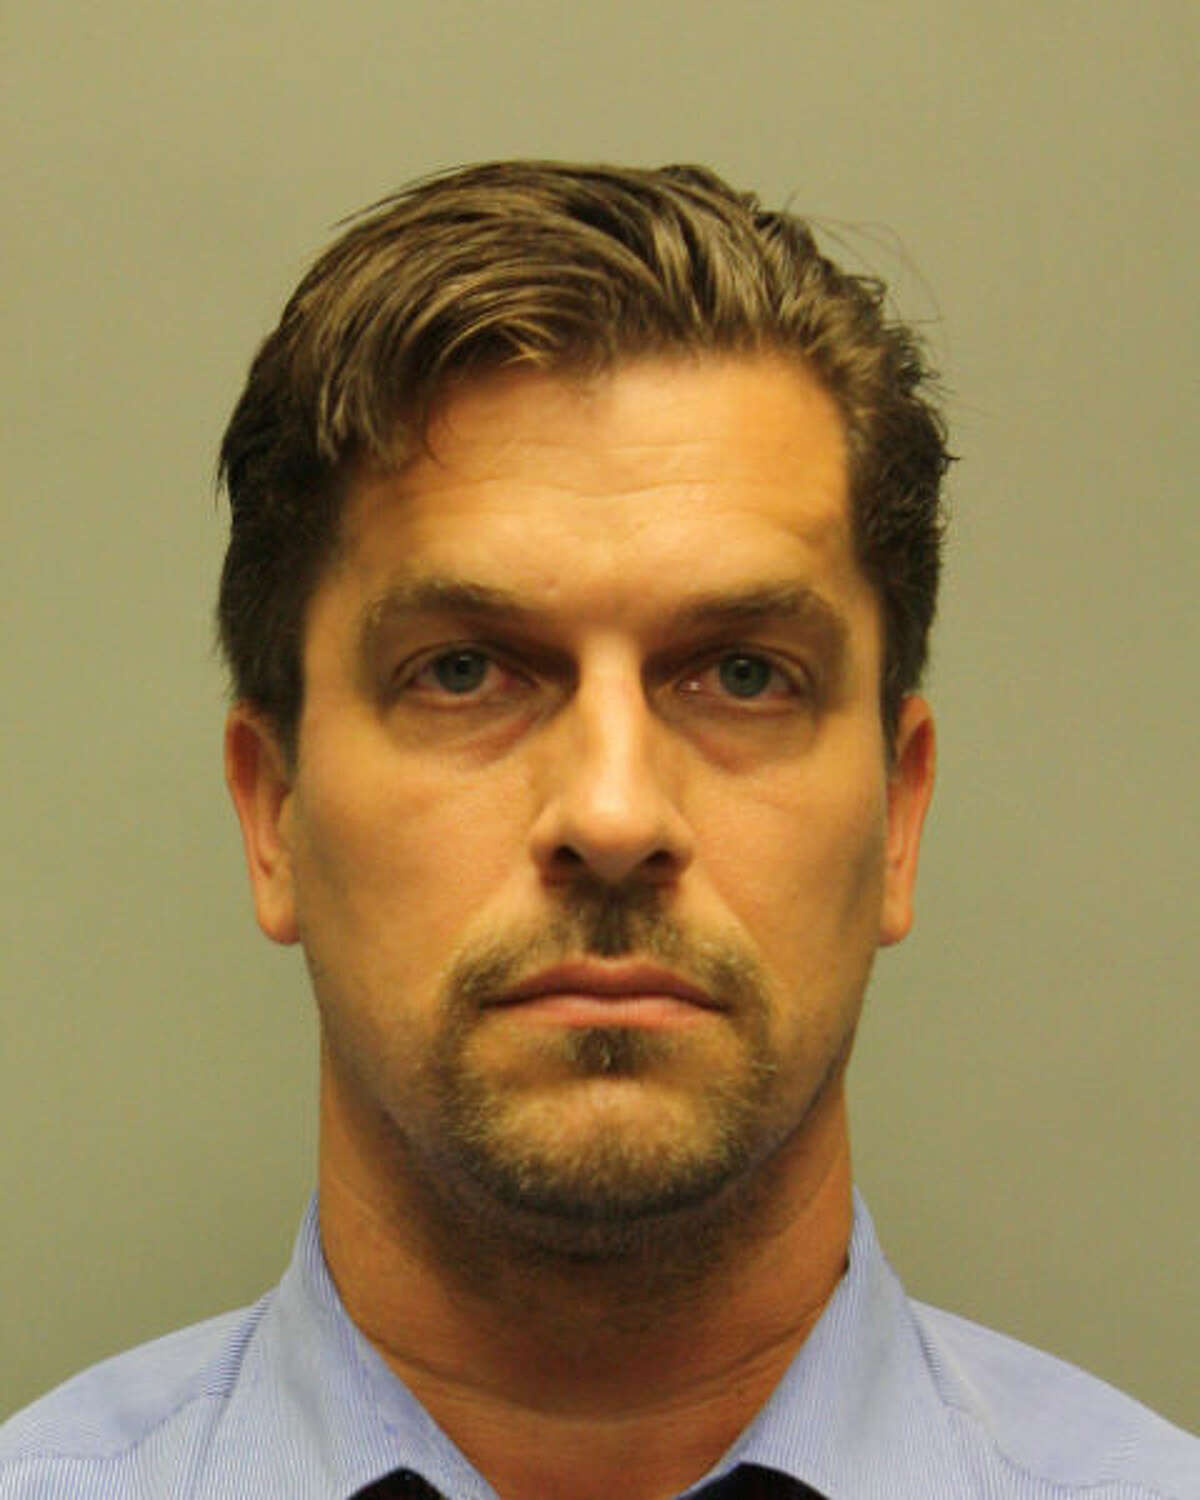 David McClure was arrested by the Harris County Sheriff's Office and charged with prostitution as part of a month-long sex sting operation conducted by the Harris County Sheriff's Office and the Houston Police Department.